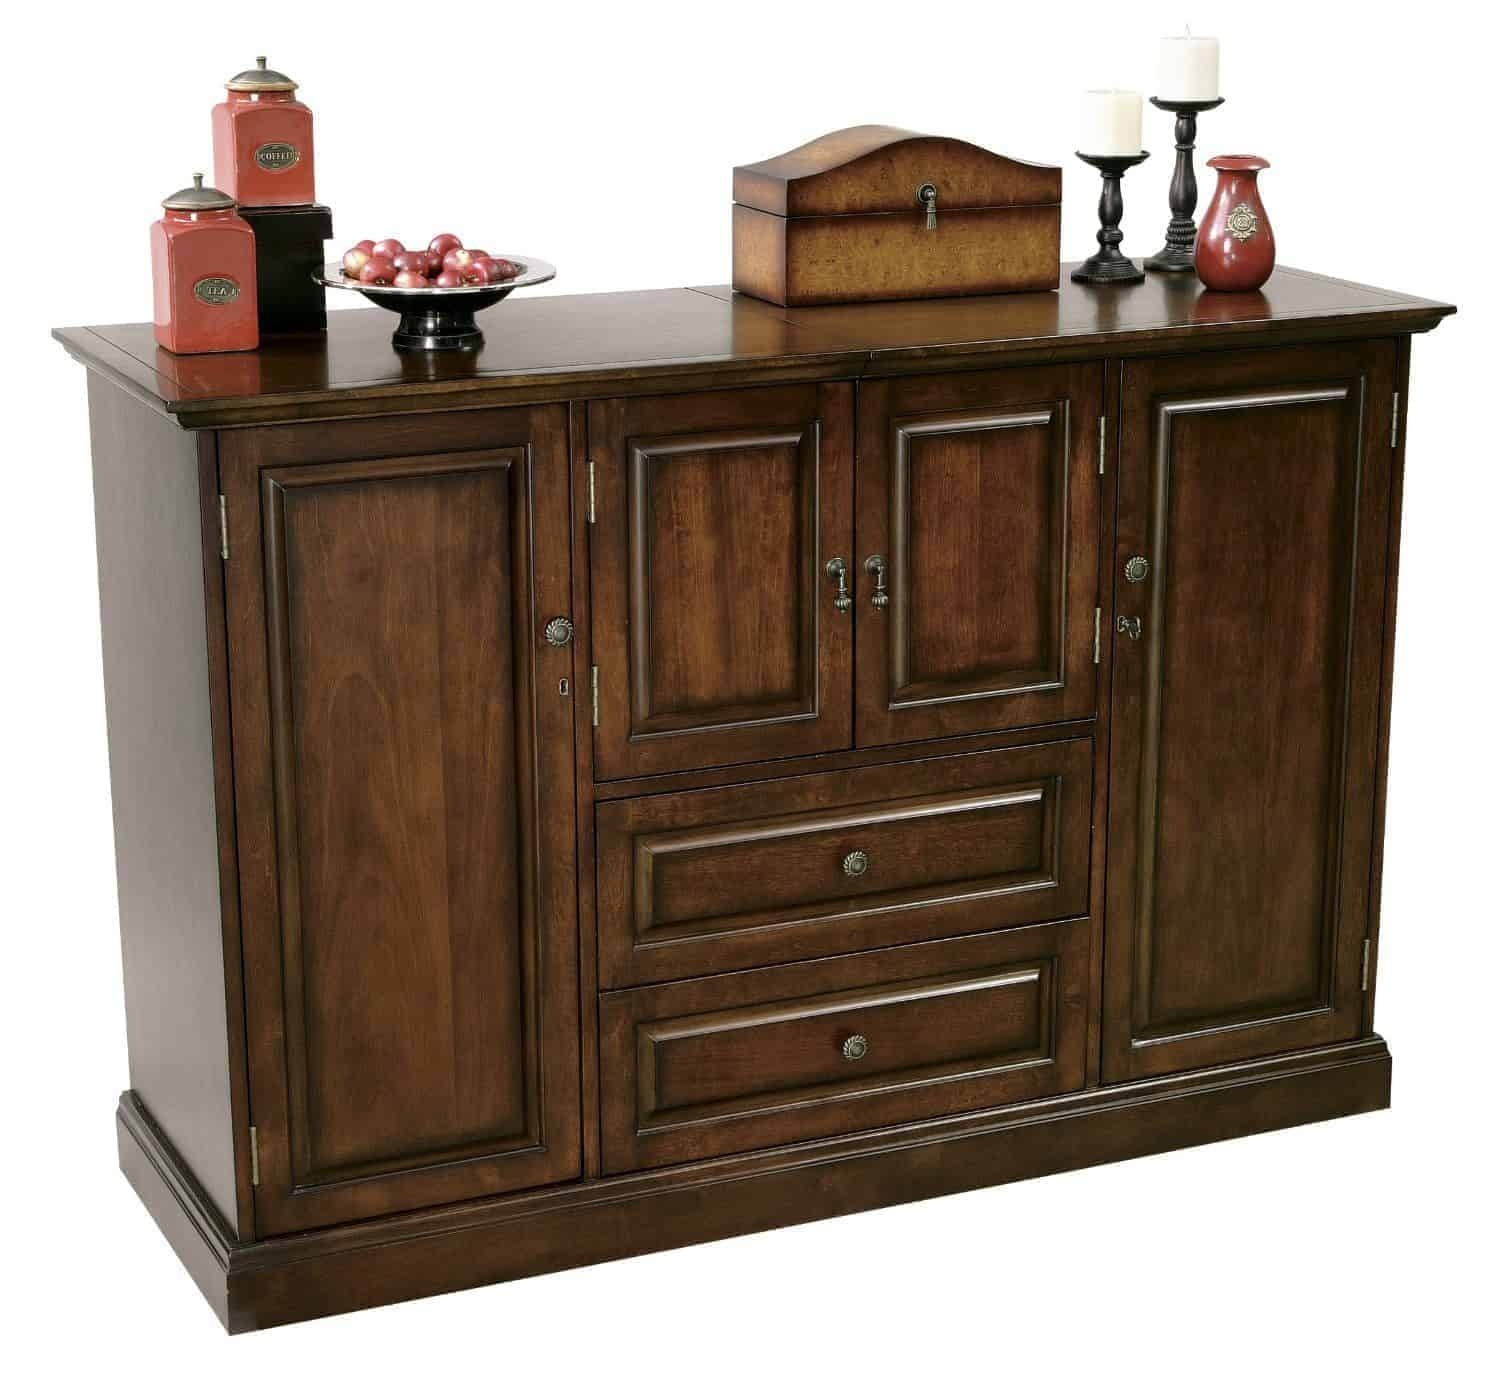 Howard Miller 695-080 Bar Devino Wine & Bar Console